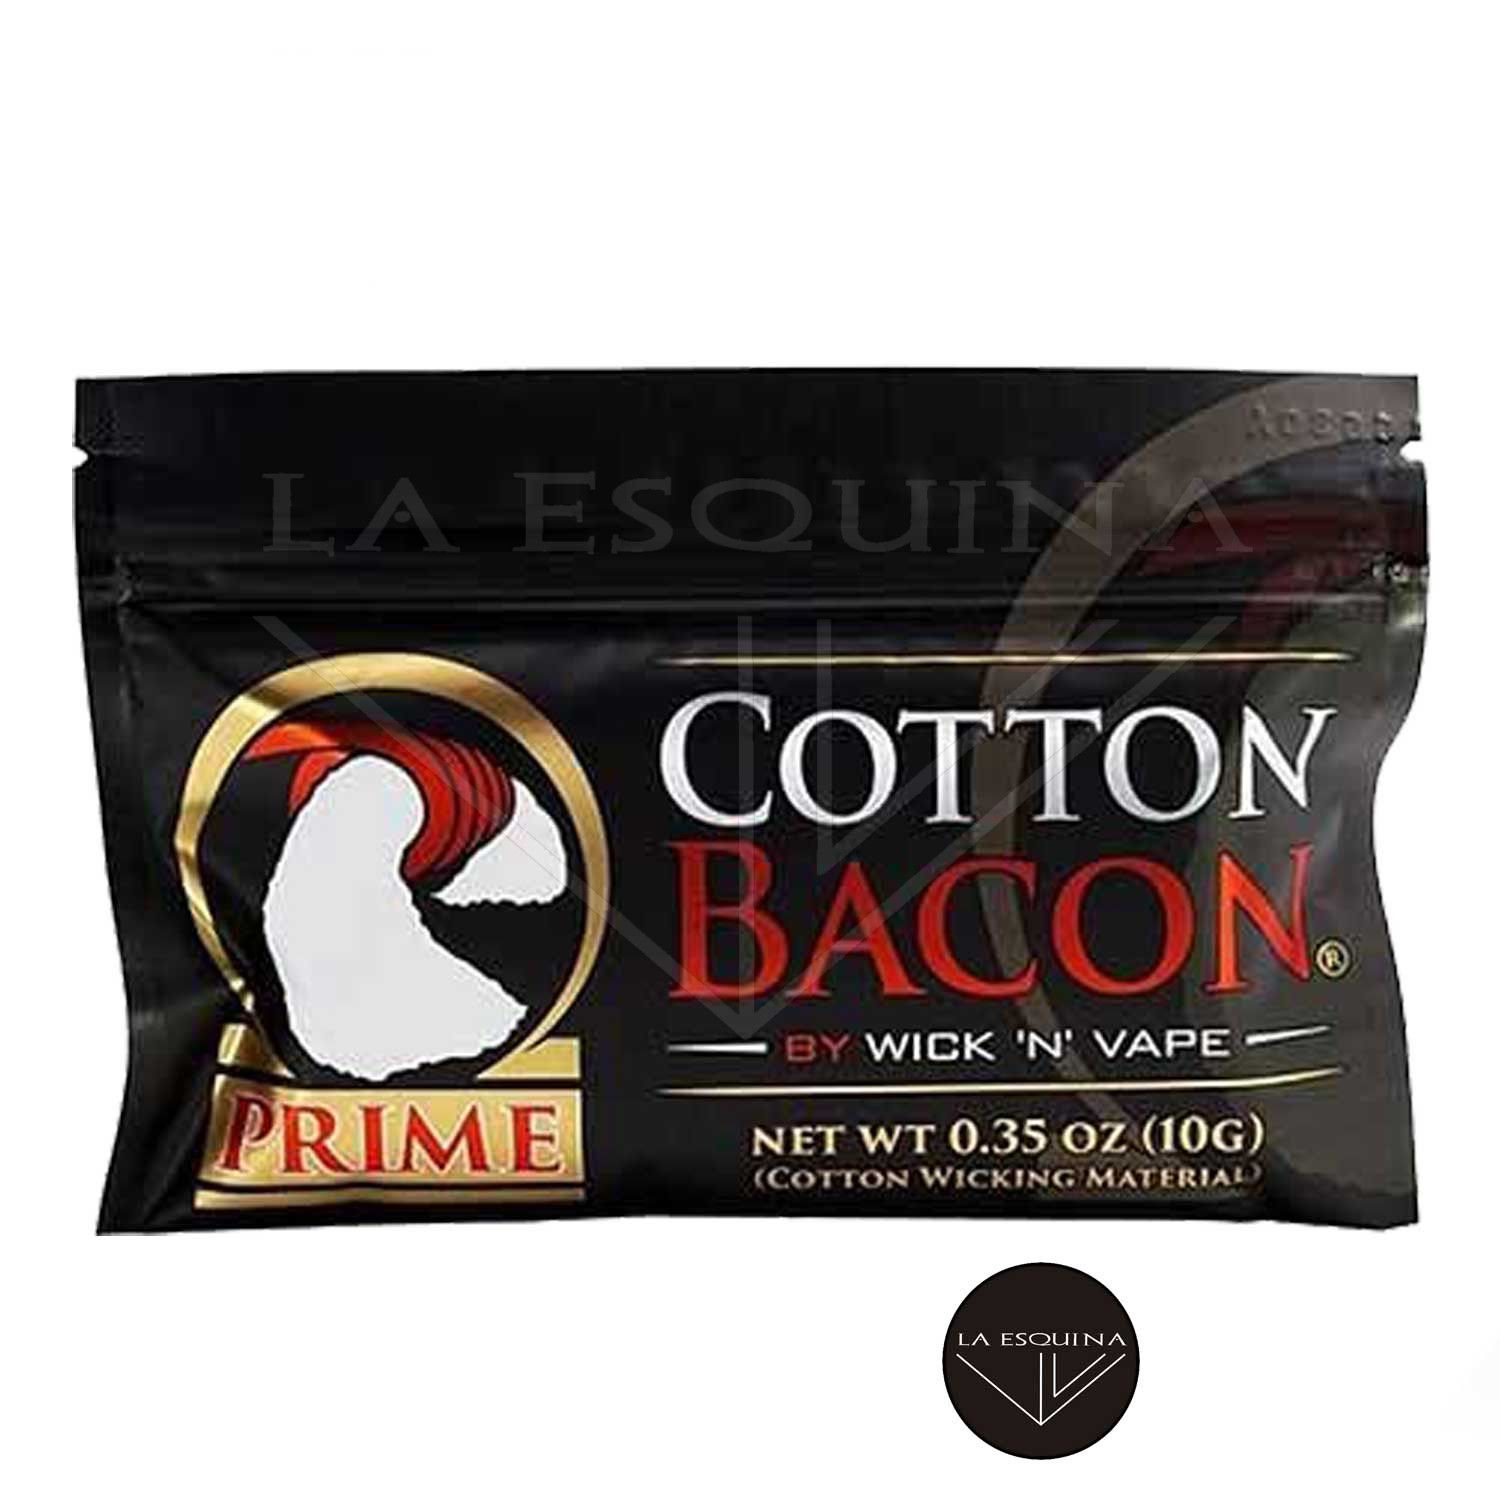 Algodón Cotton Bacon Prime WICK 'N' VAPE